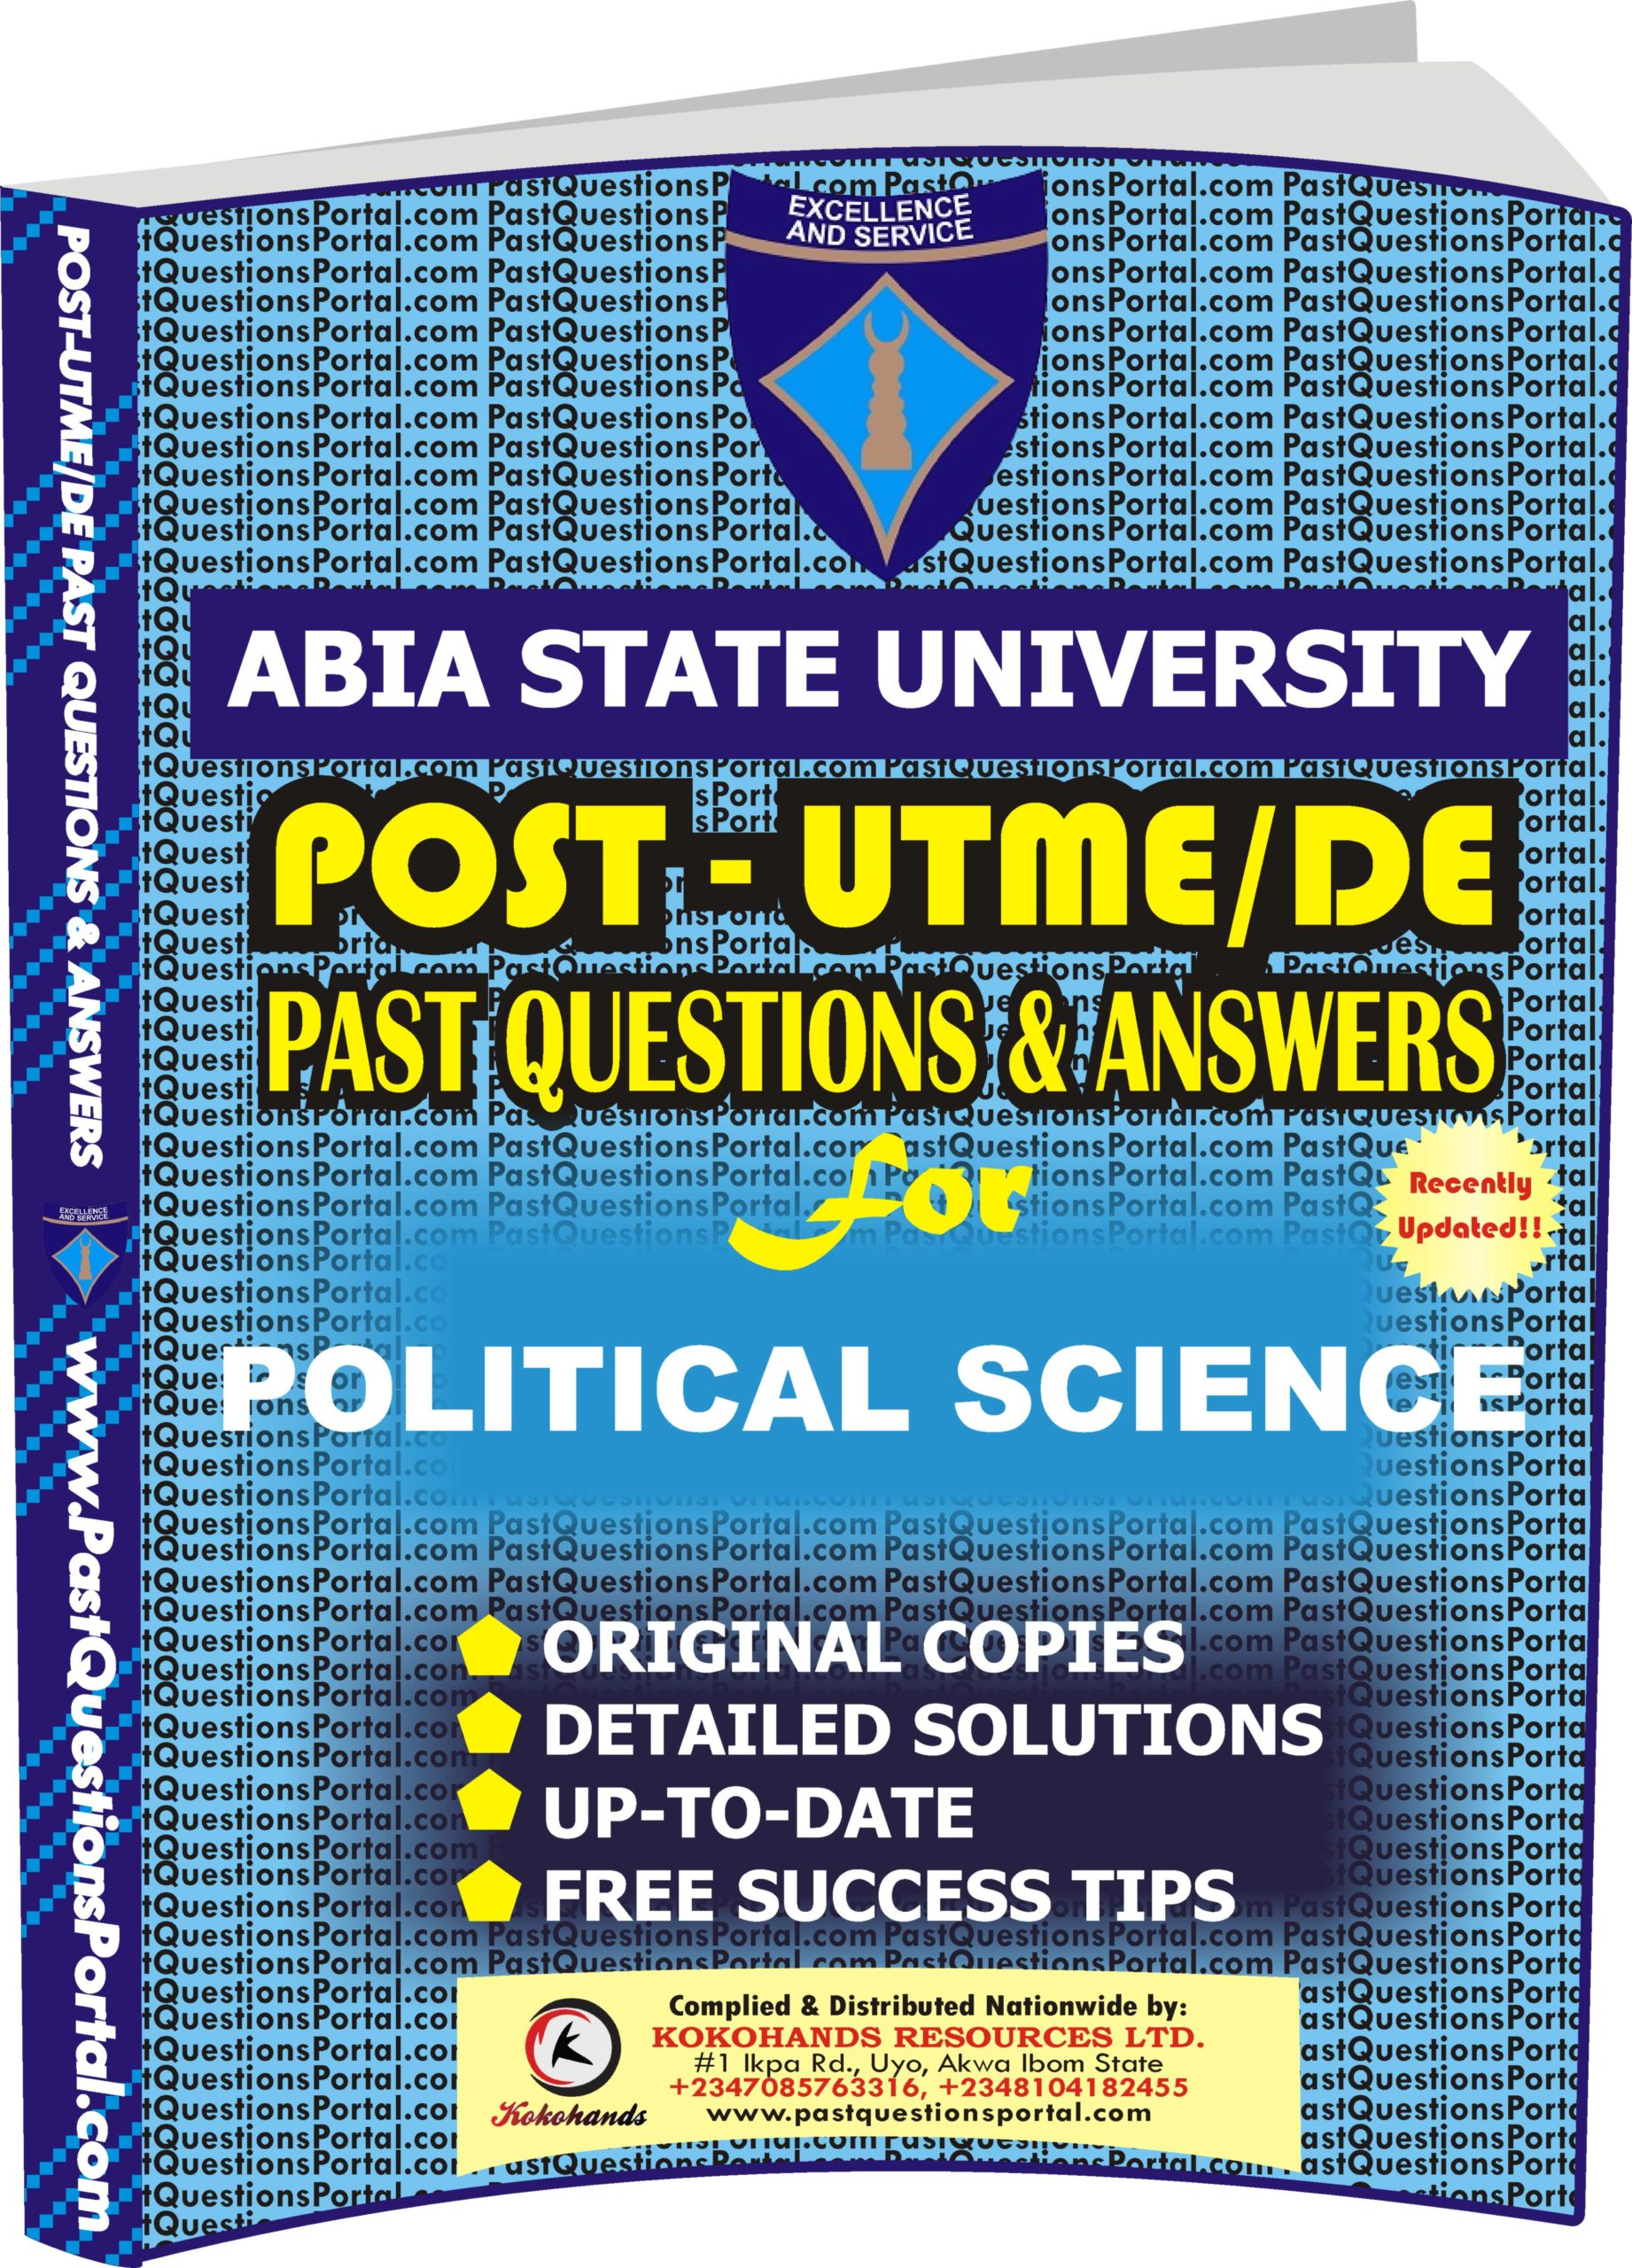 ABSU Post UTME Past Questions for POLITICAL SCIENCE